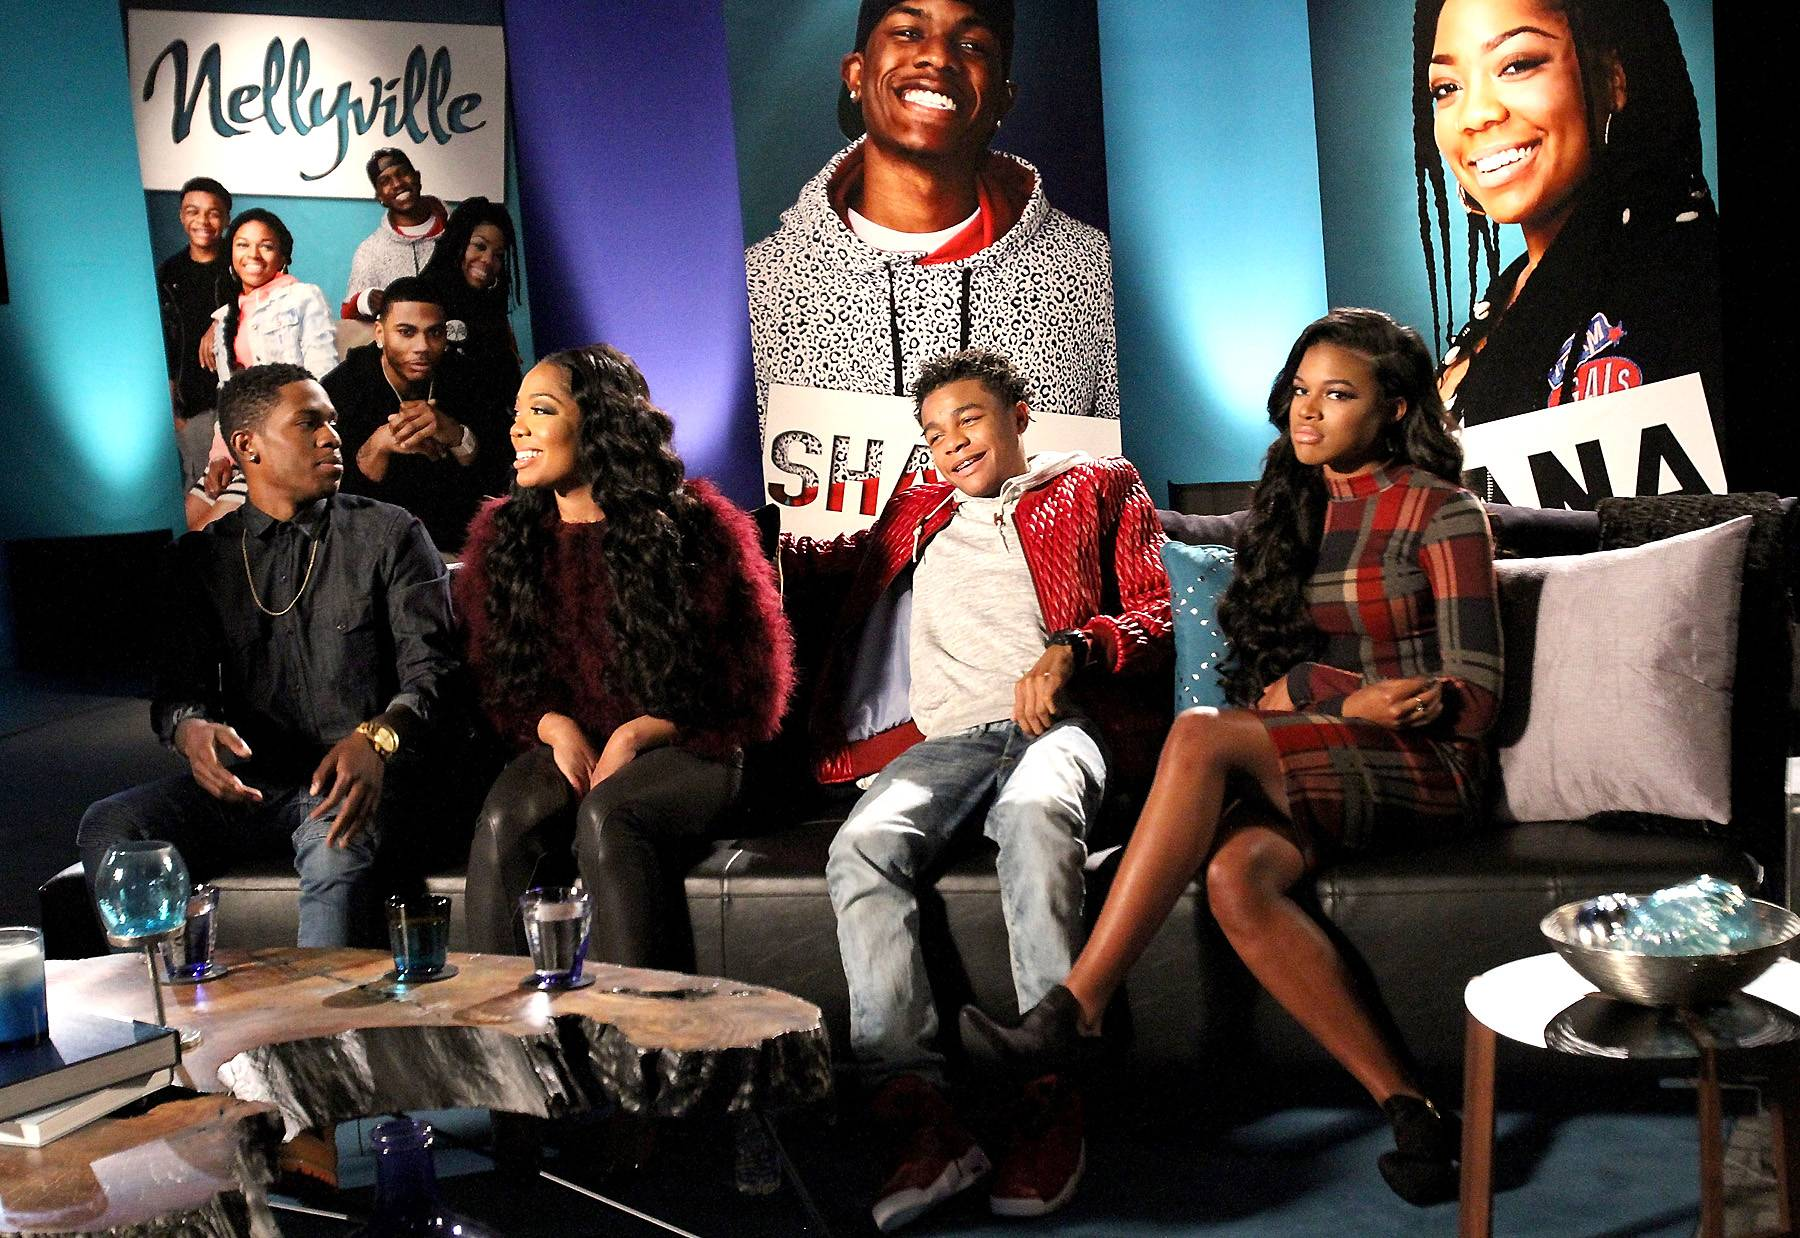 Cut Up Kids - The Nellyville clan doing what they do best — joking around.   (Photo: Maury Phillips/WireImage)